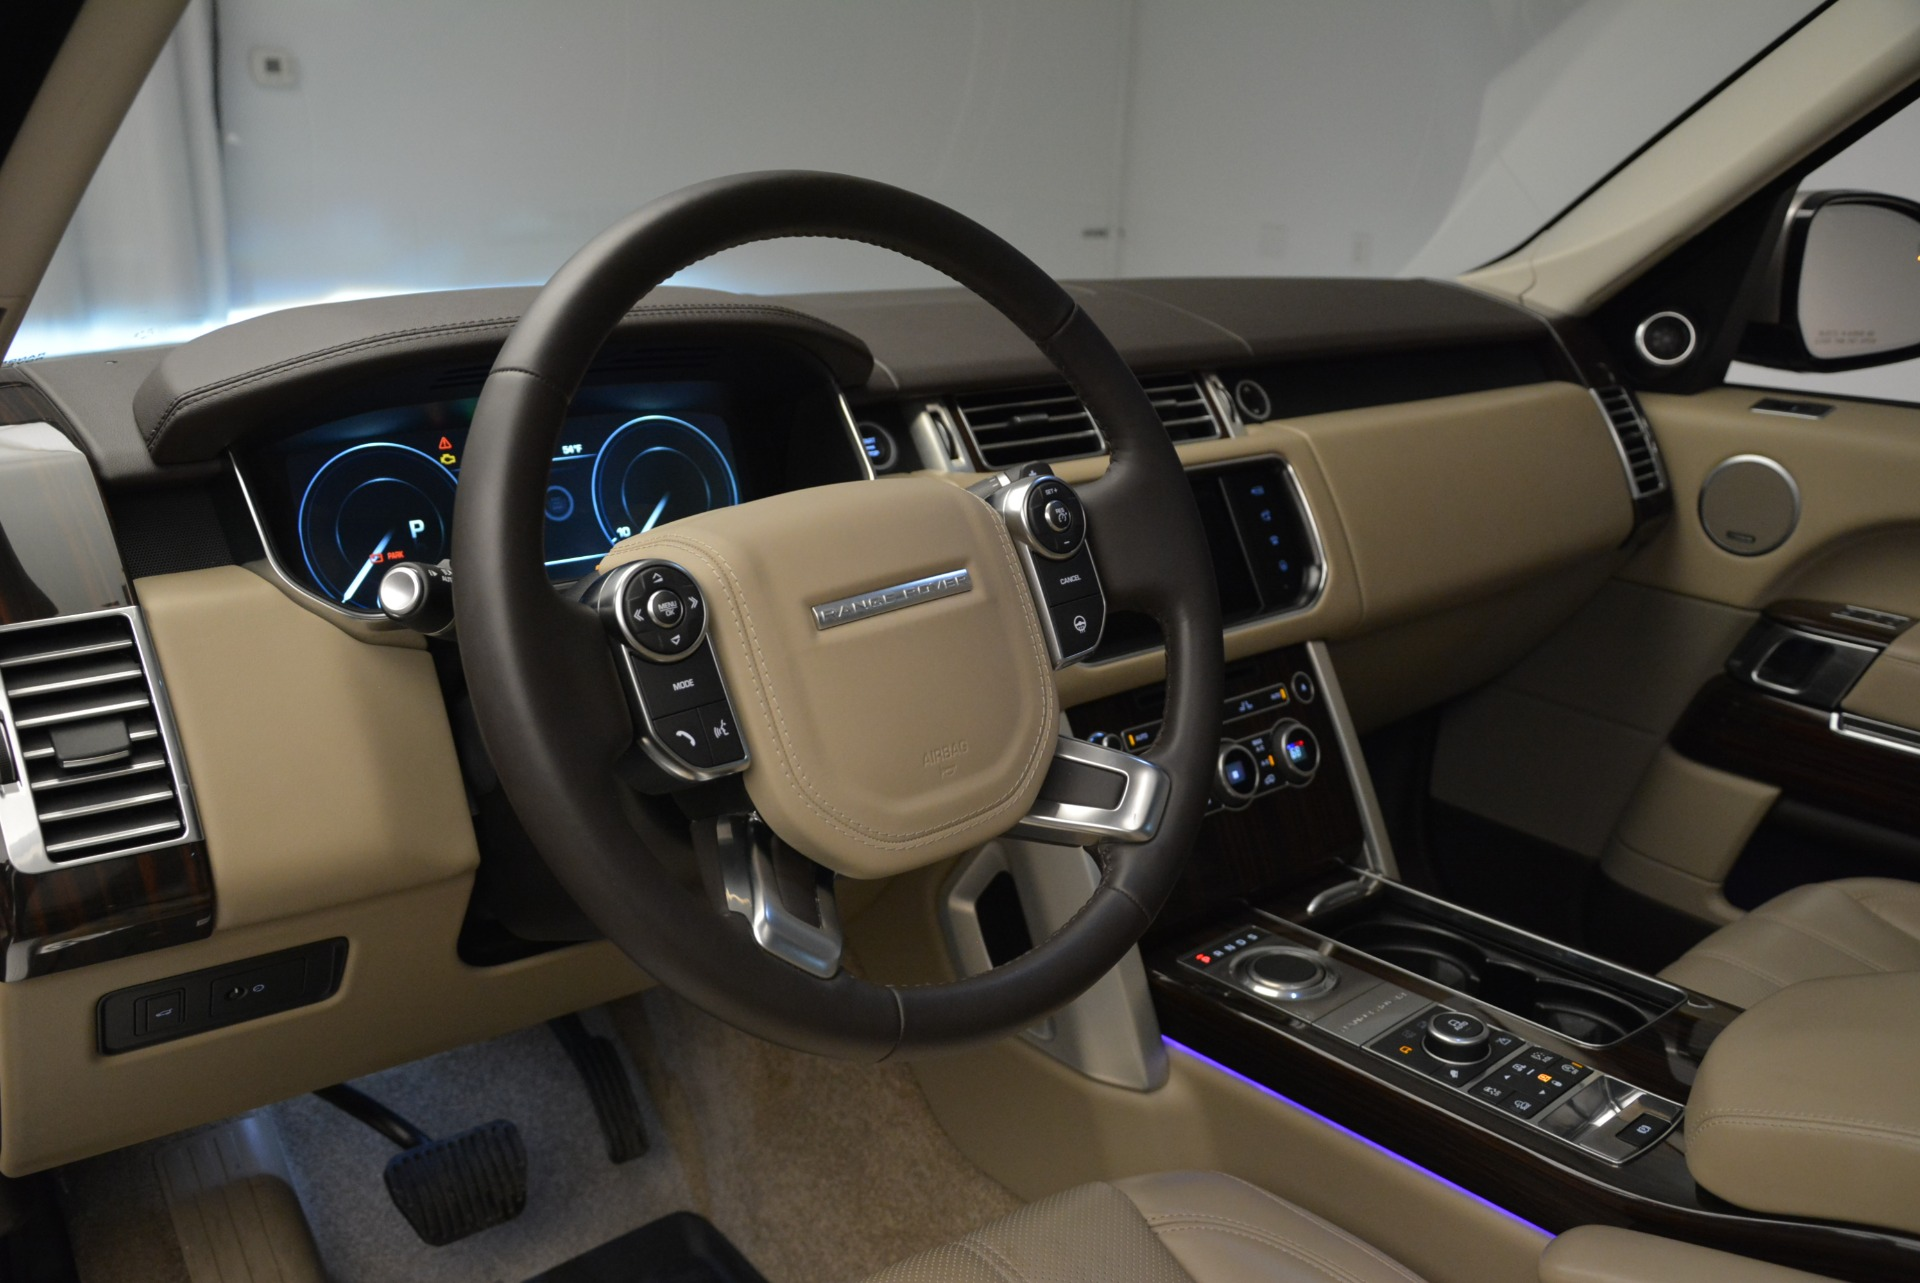 Used 2016 Land Rover Range Rover HSE For Sale In Greenwich, CT 1962_p20